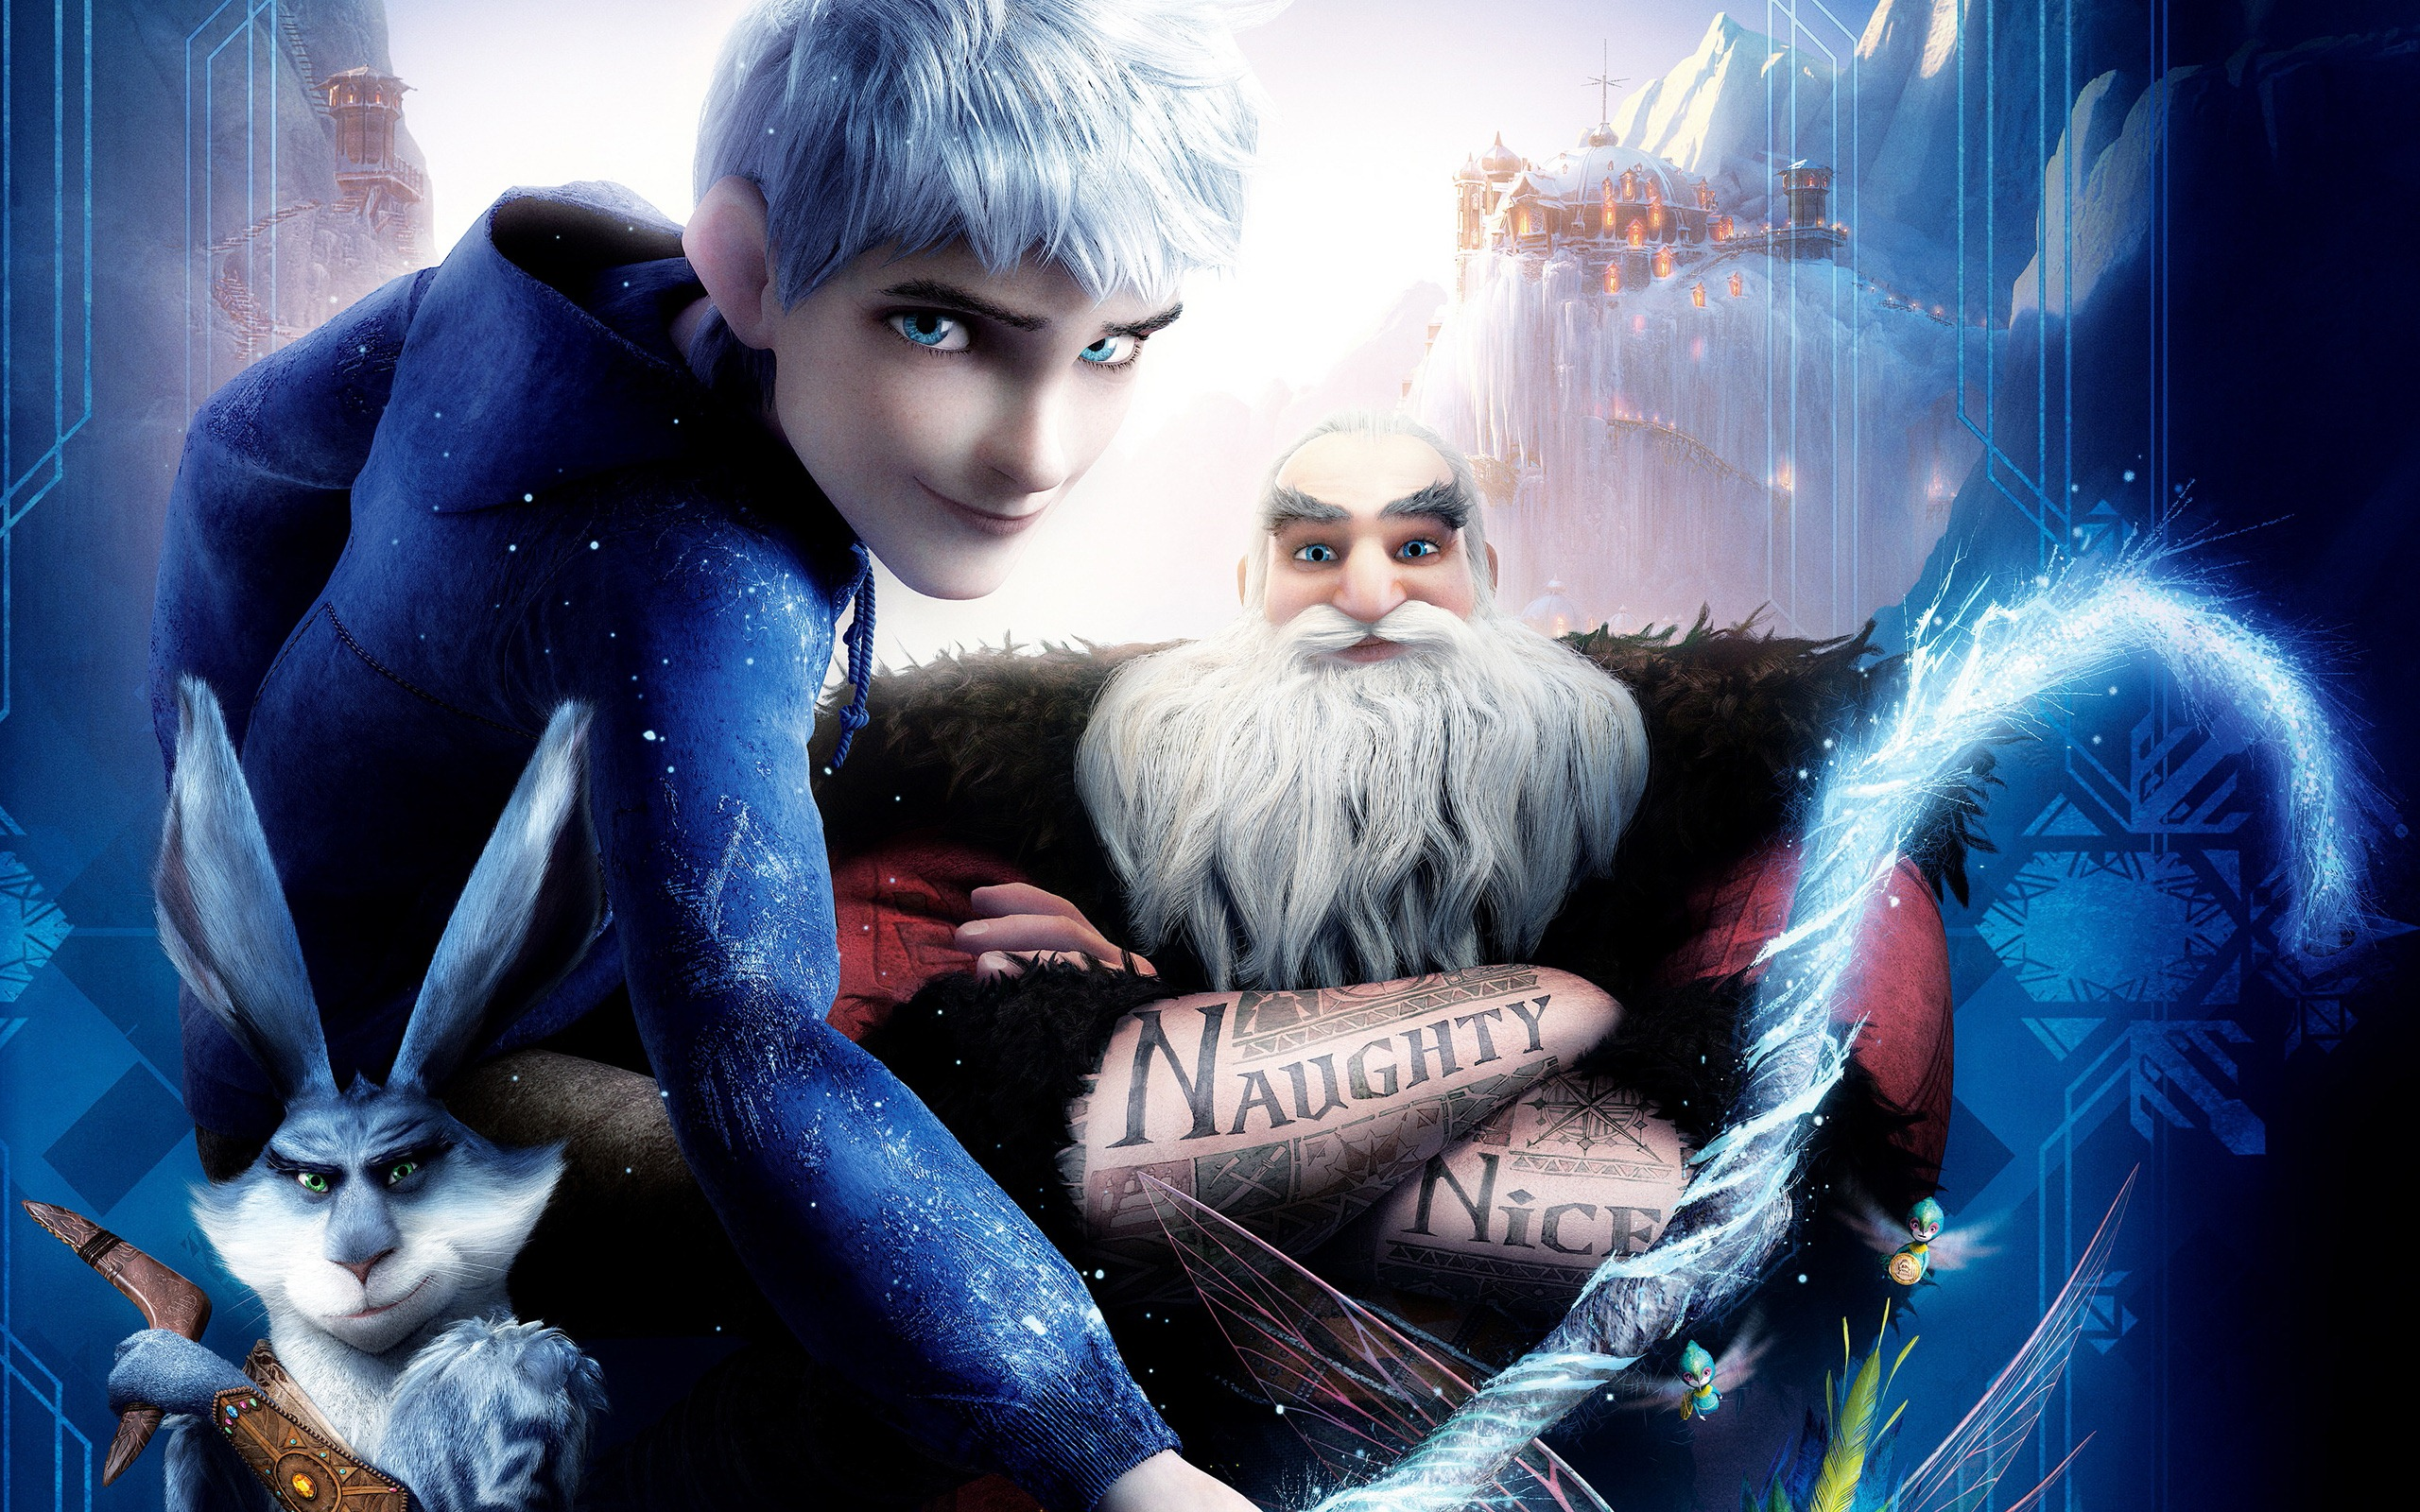 Rise of the guardians hd wallpapers 4 2560x1600 wallpaper rise of the guardians hd wallpapers 4 2560x1600 thecheapjerseys Images